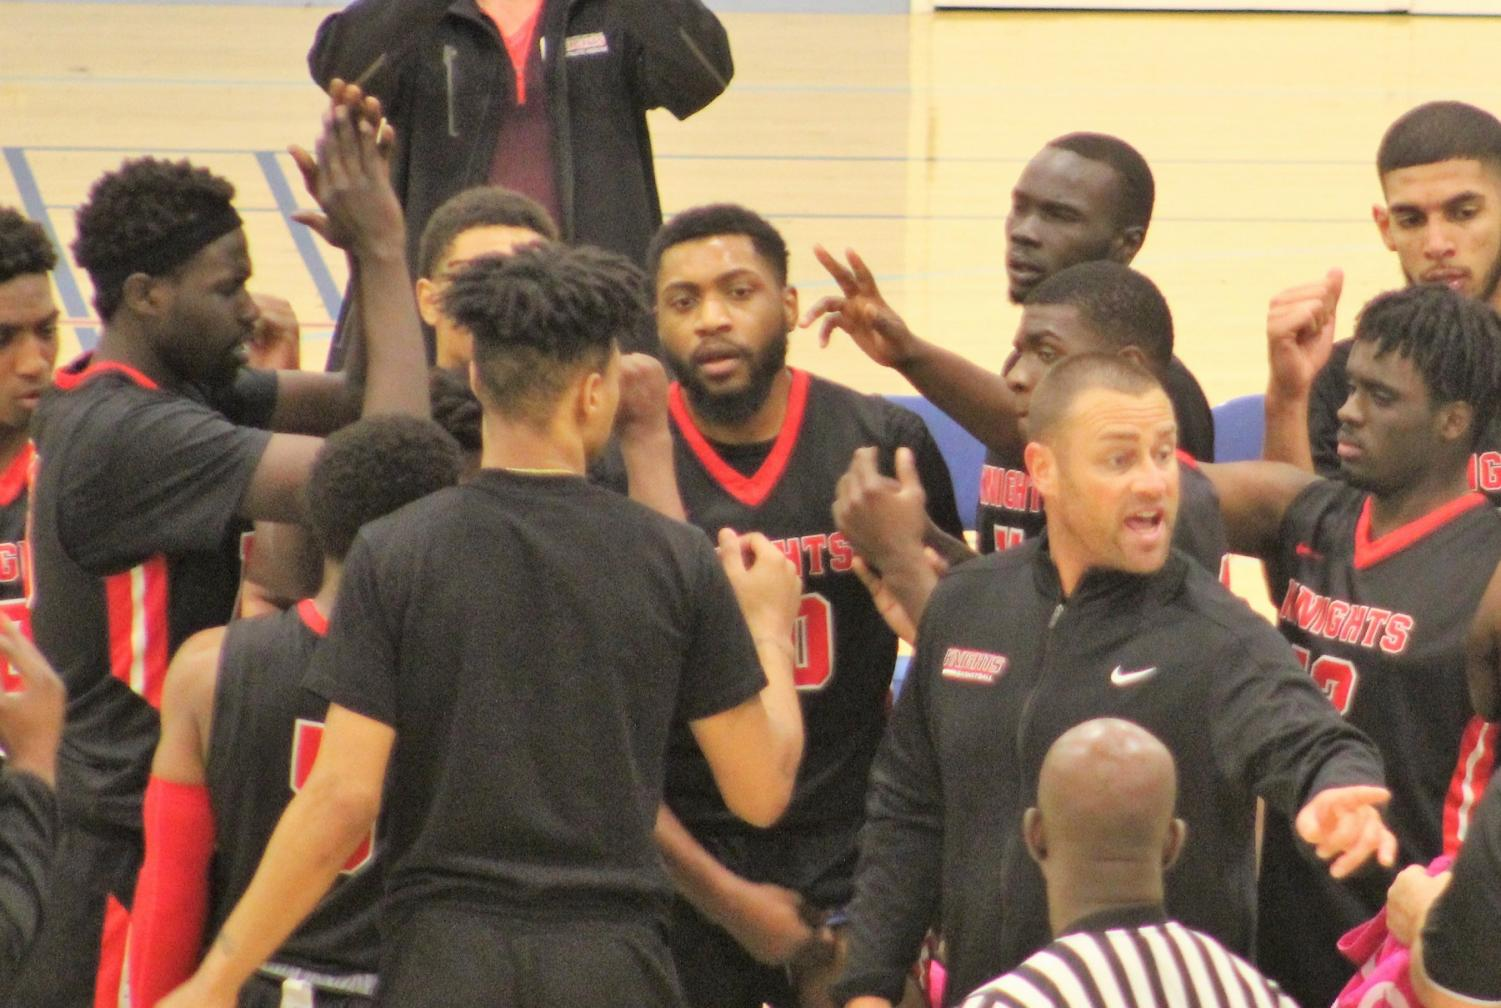 Coach Mitch Charlens and the City College Knights conclude another successful basketball season. By Jonny Rico/City Times